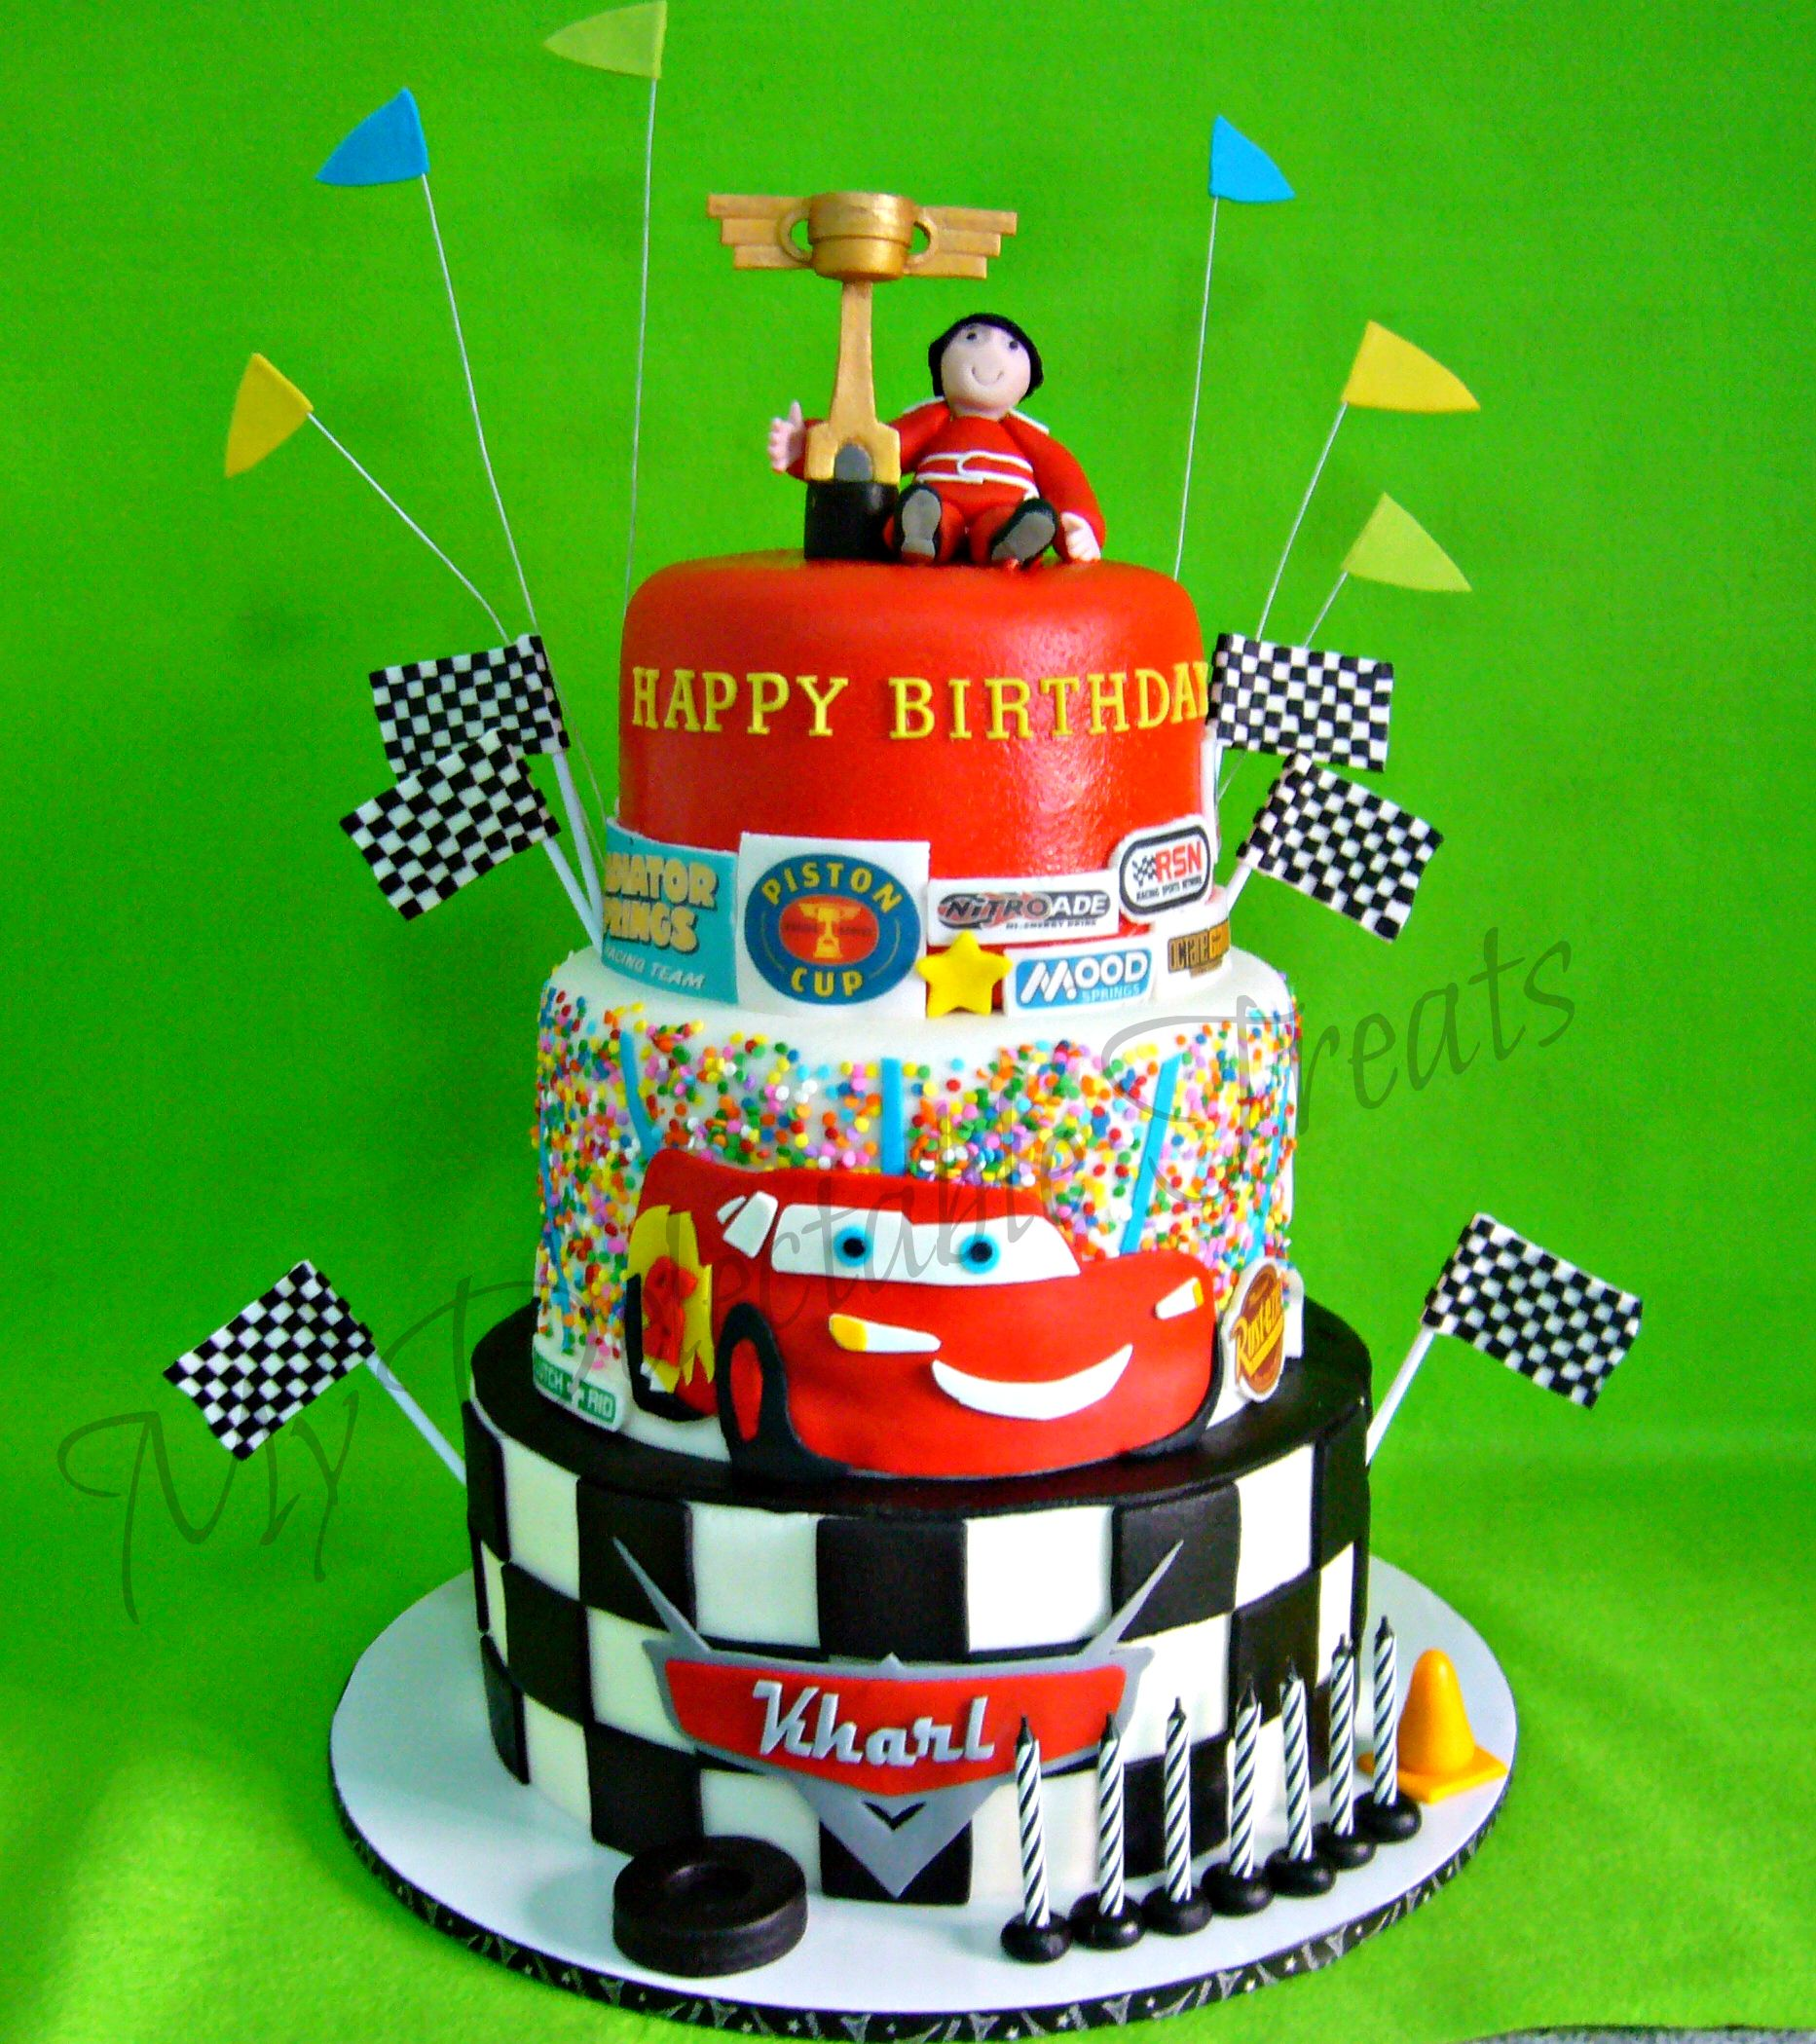 Disney Pixar Cars Cake Design : Kharls Cars themed birthday cake cake Pinterest ...